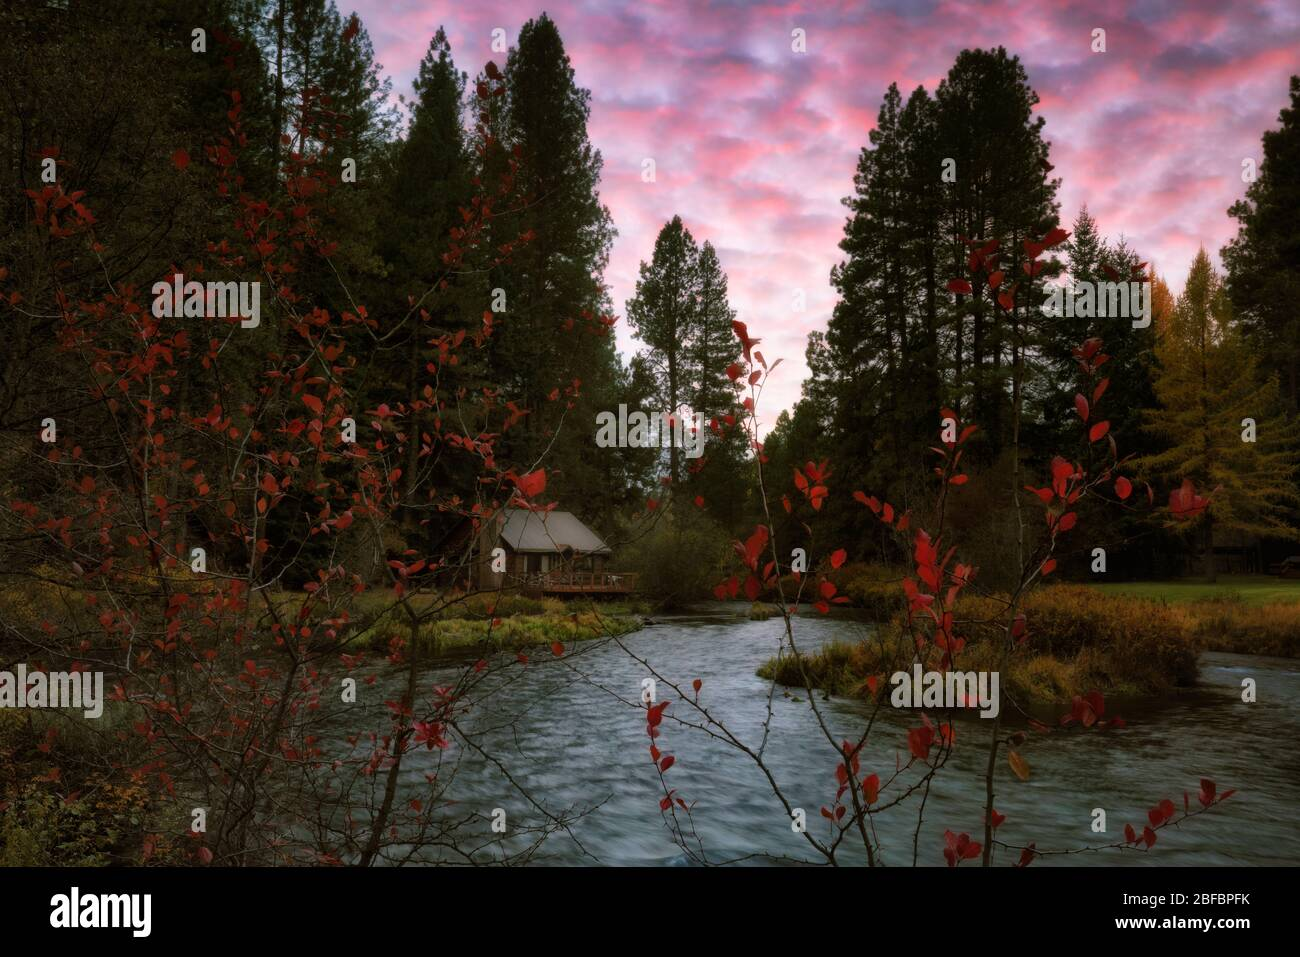 Autumn sunset over the Metolius River at Camp Sherman in Central Oregon's Jefferson County. Stock Photo